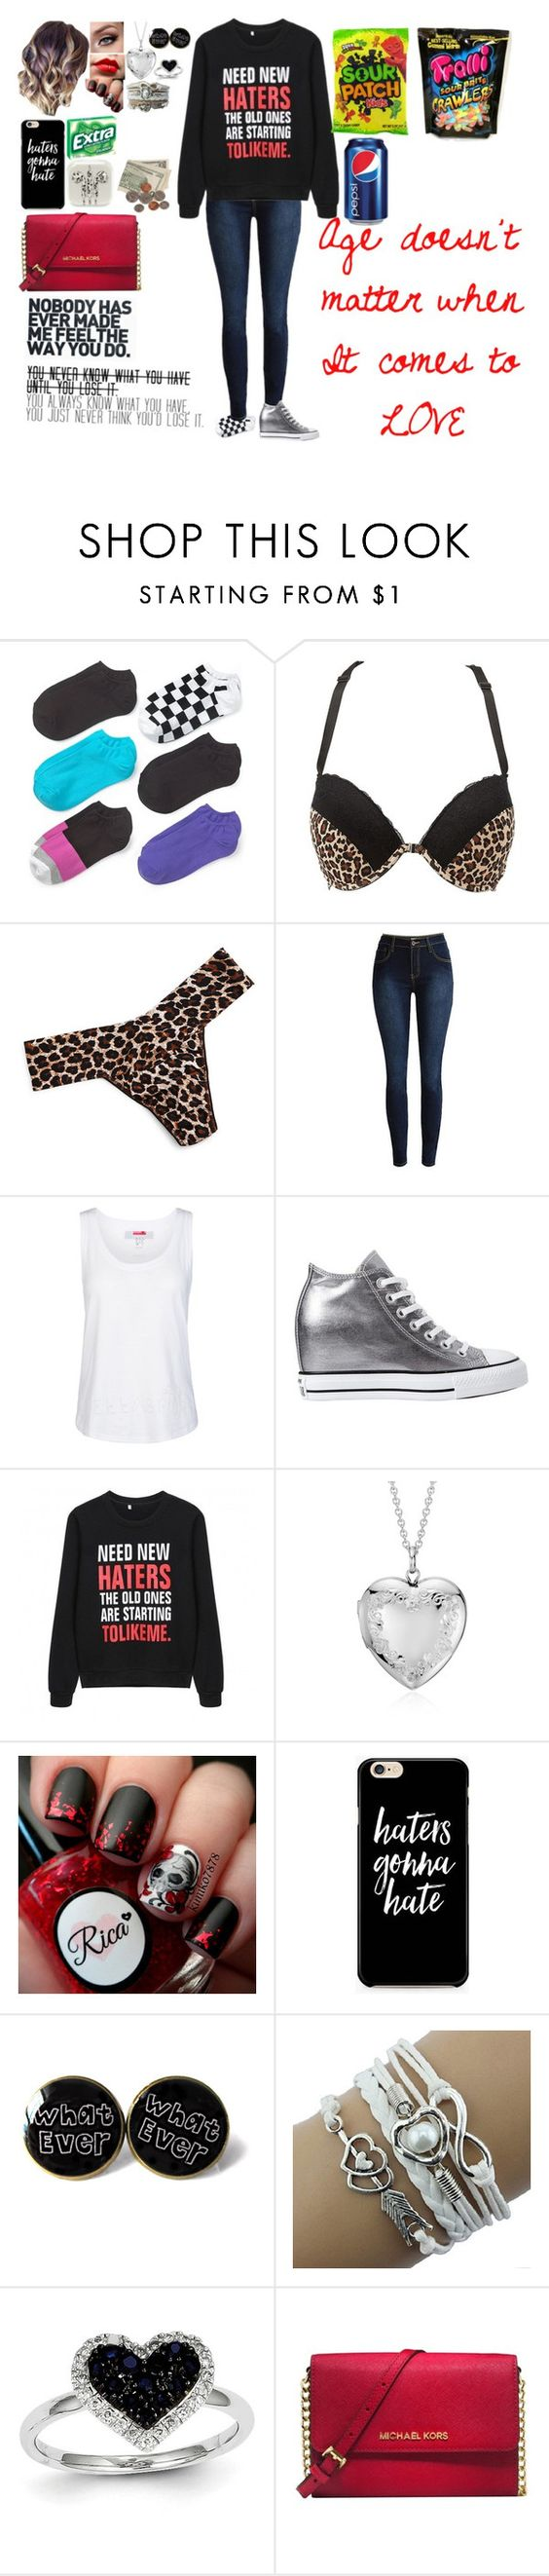 """""""Age doesn't matter,love does"""" by haleyparis ❤ liked on Polyvore featuring Hue, Charlotte Russe, Hanky Panky, adidas, Converse, Blue Nile, Kevin Jewelers, Michael Kors and plus size clothing"""